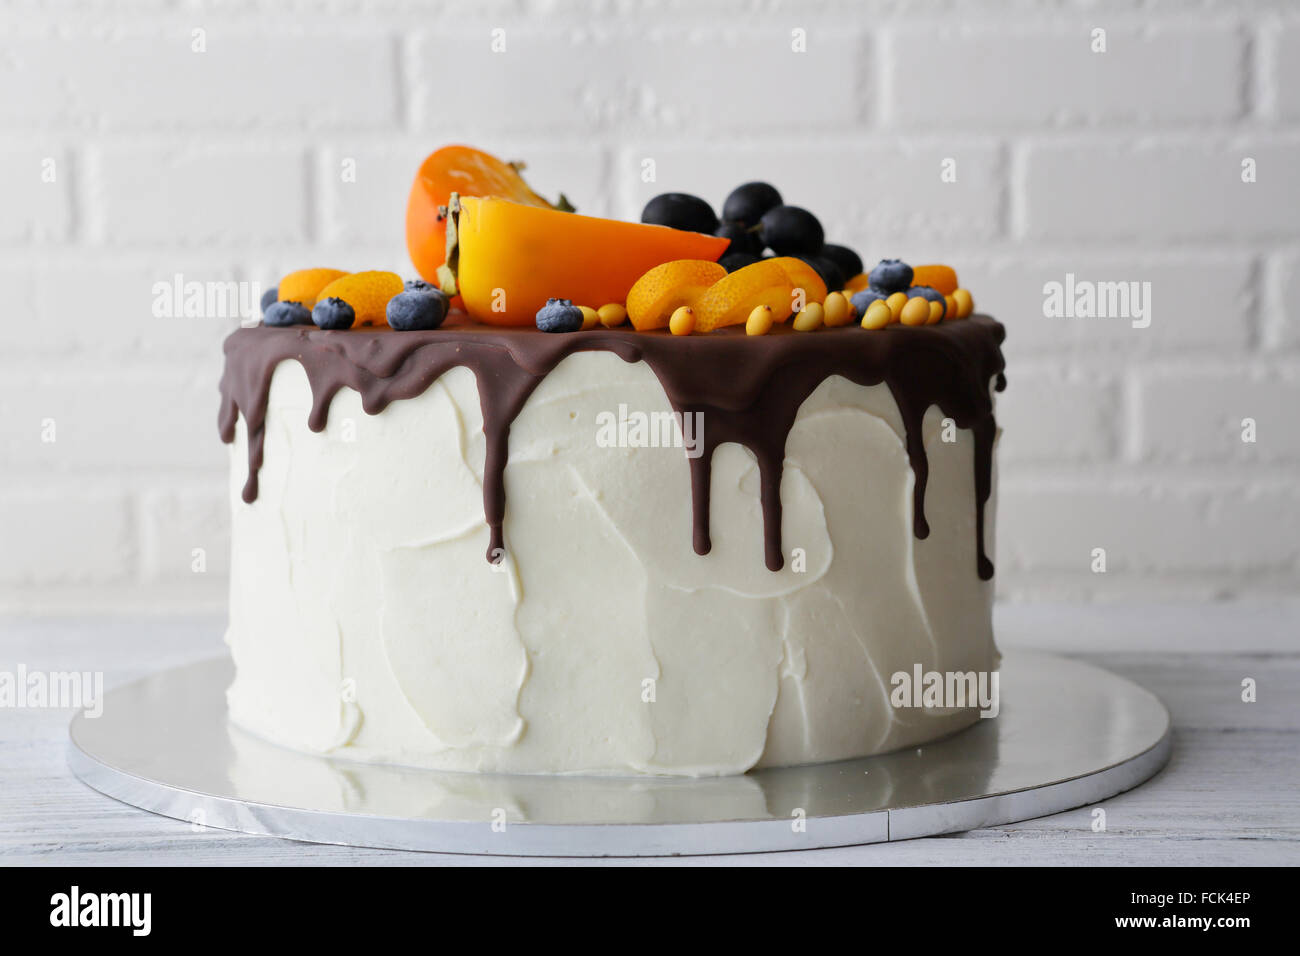 white cake with chocolate icing, food close-up - Stock Image